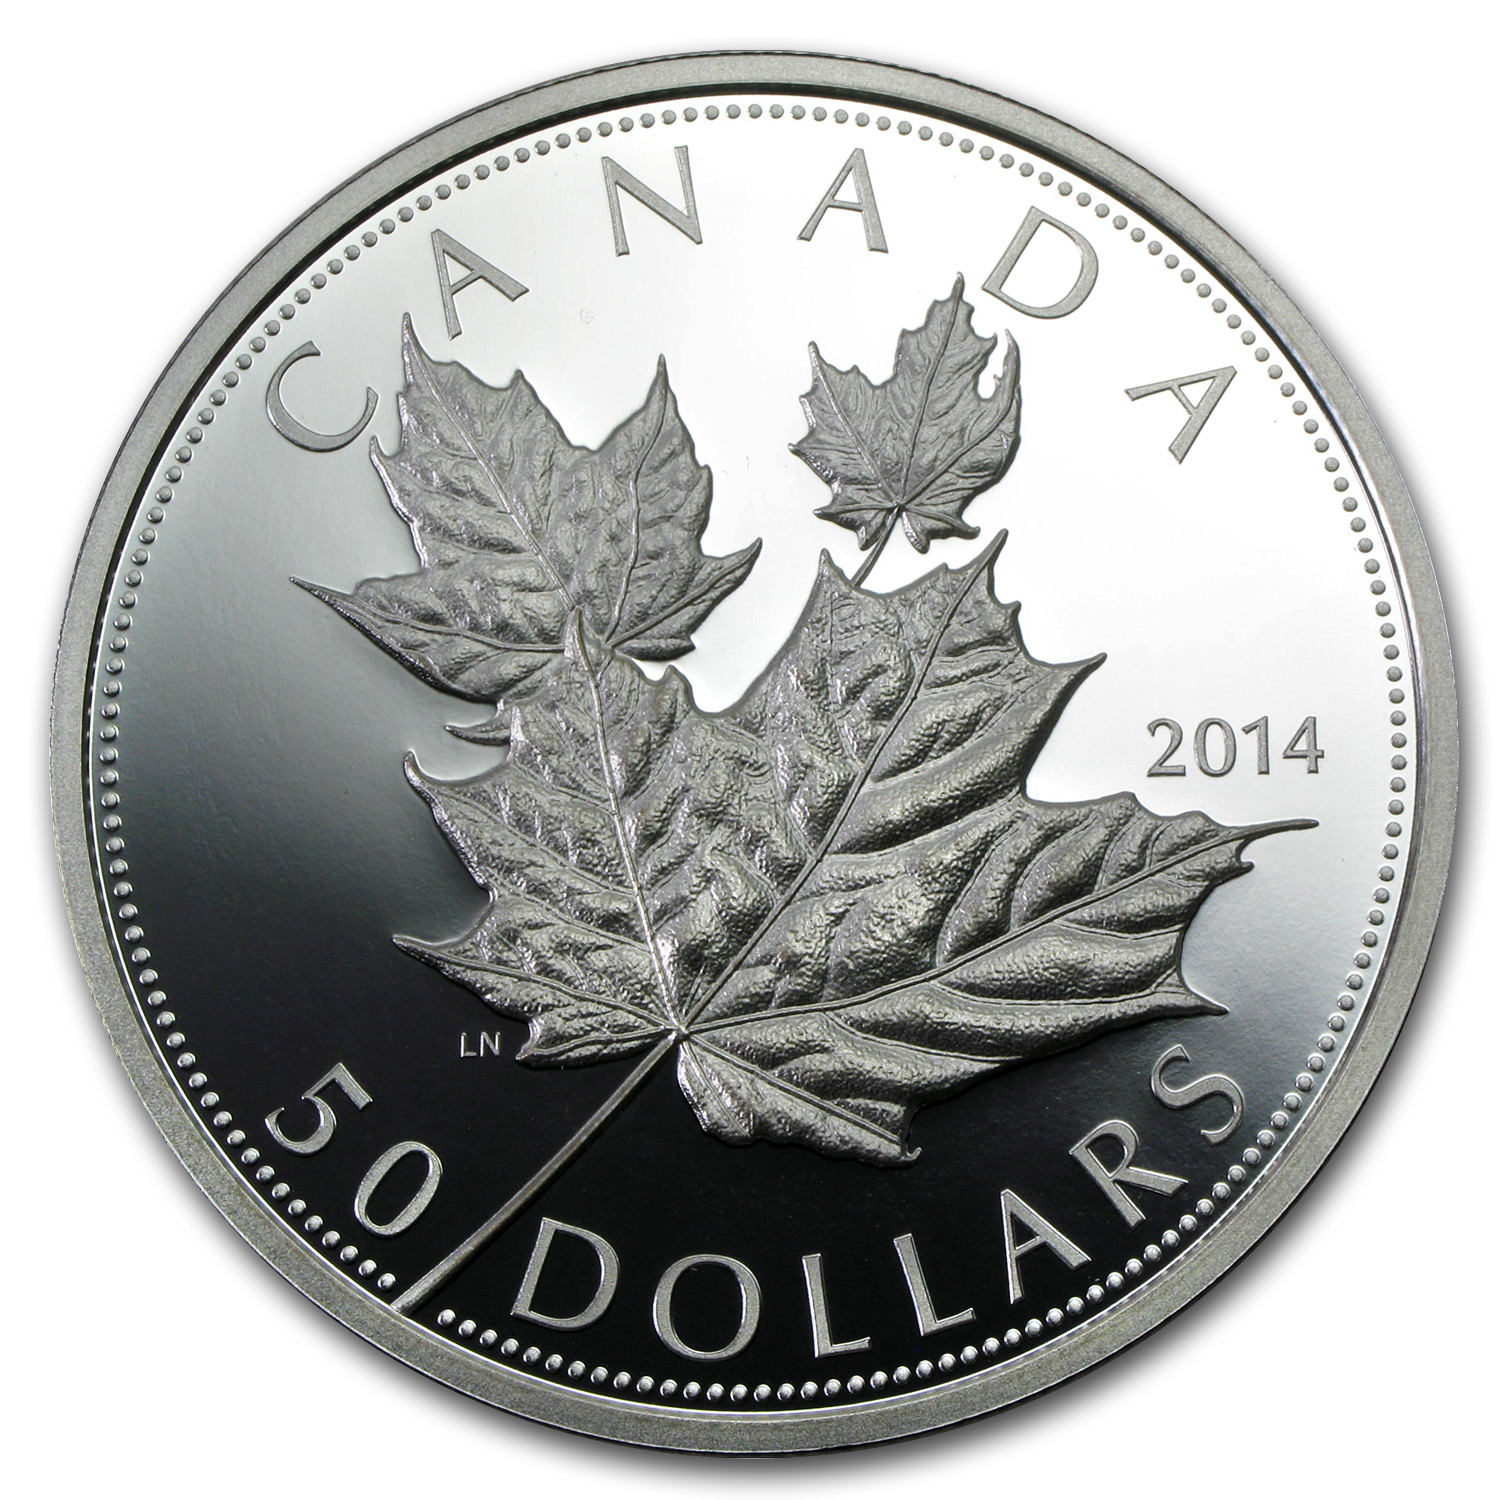 2014 5 oz Silver Proof Canadian Maple $50 (High Relief)